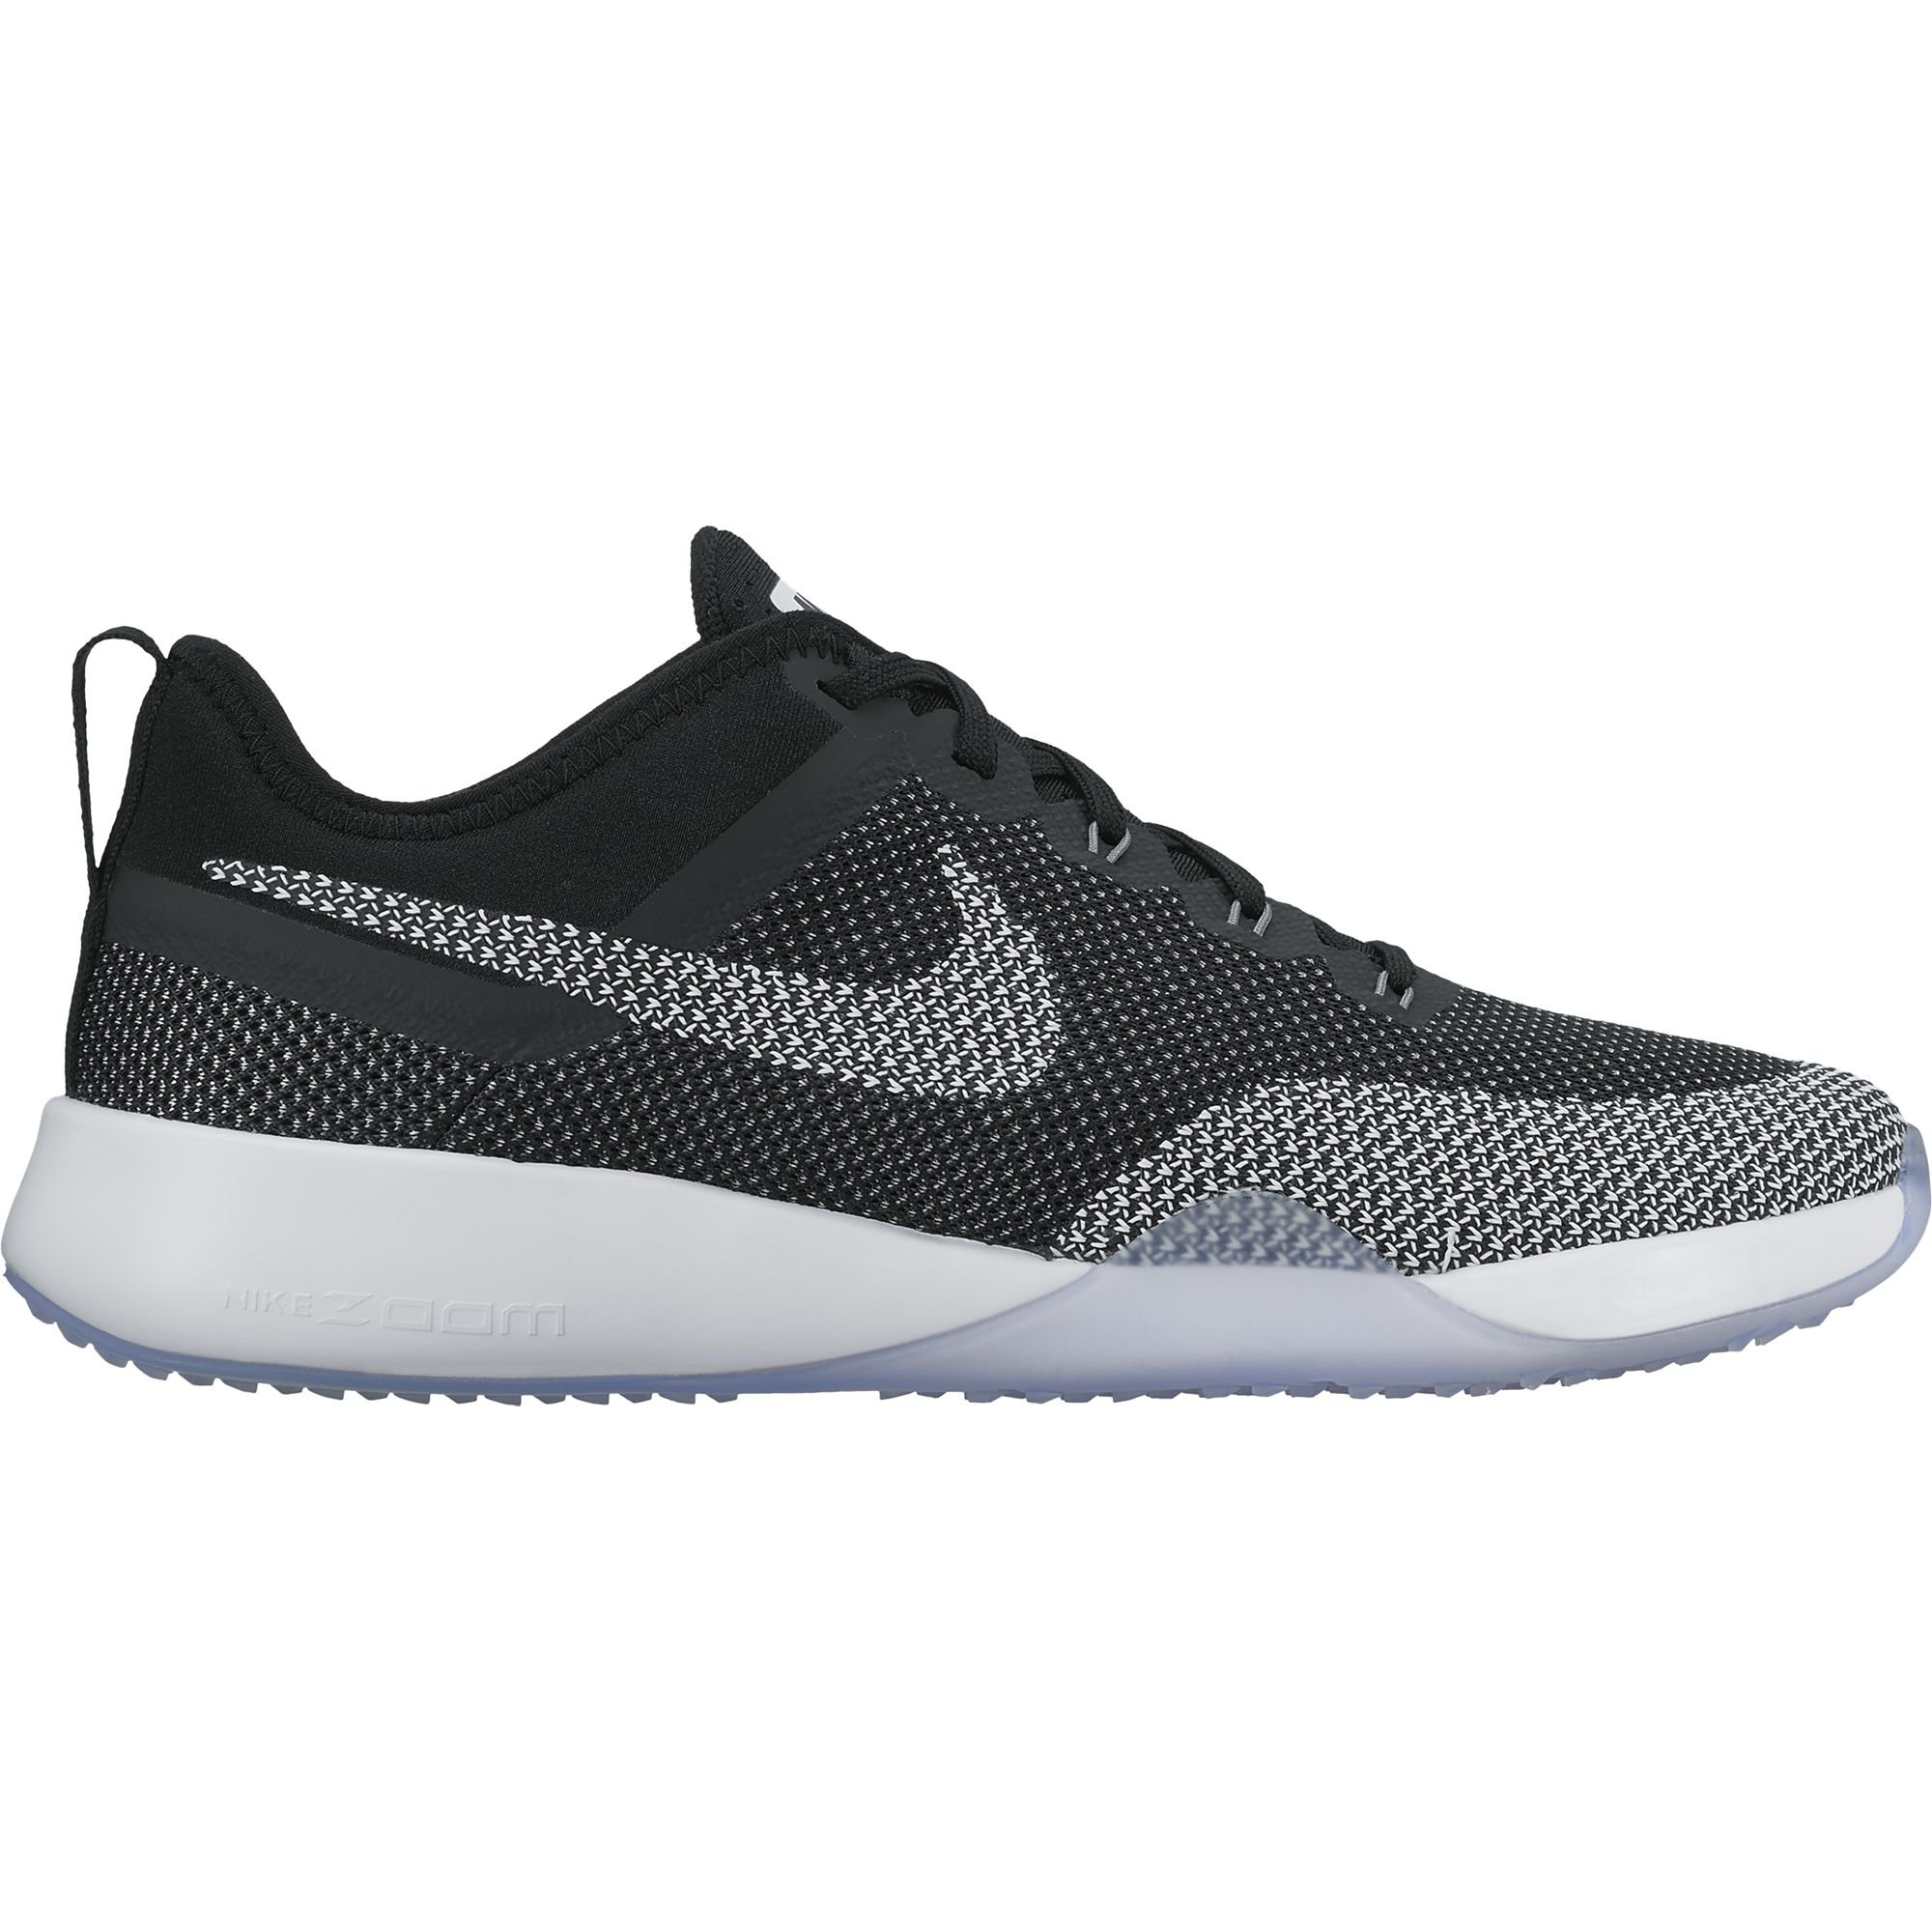 b31c5d25163b Galleon - NIKE Womens Air Zoom Dynamic Mesh Trainers Black White Cool Grey  (9.5)